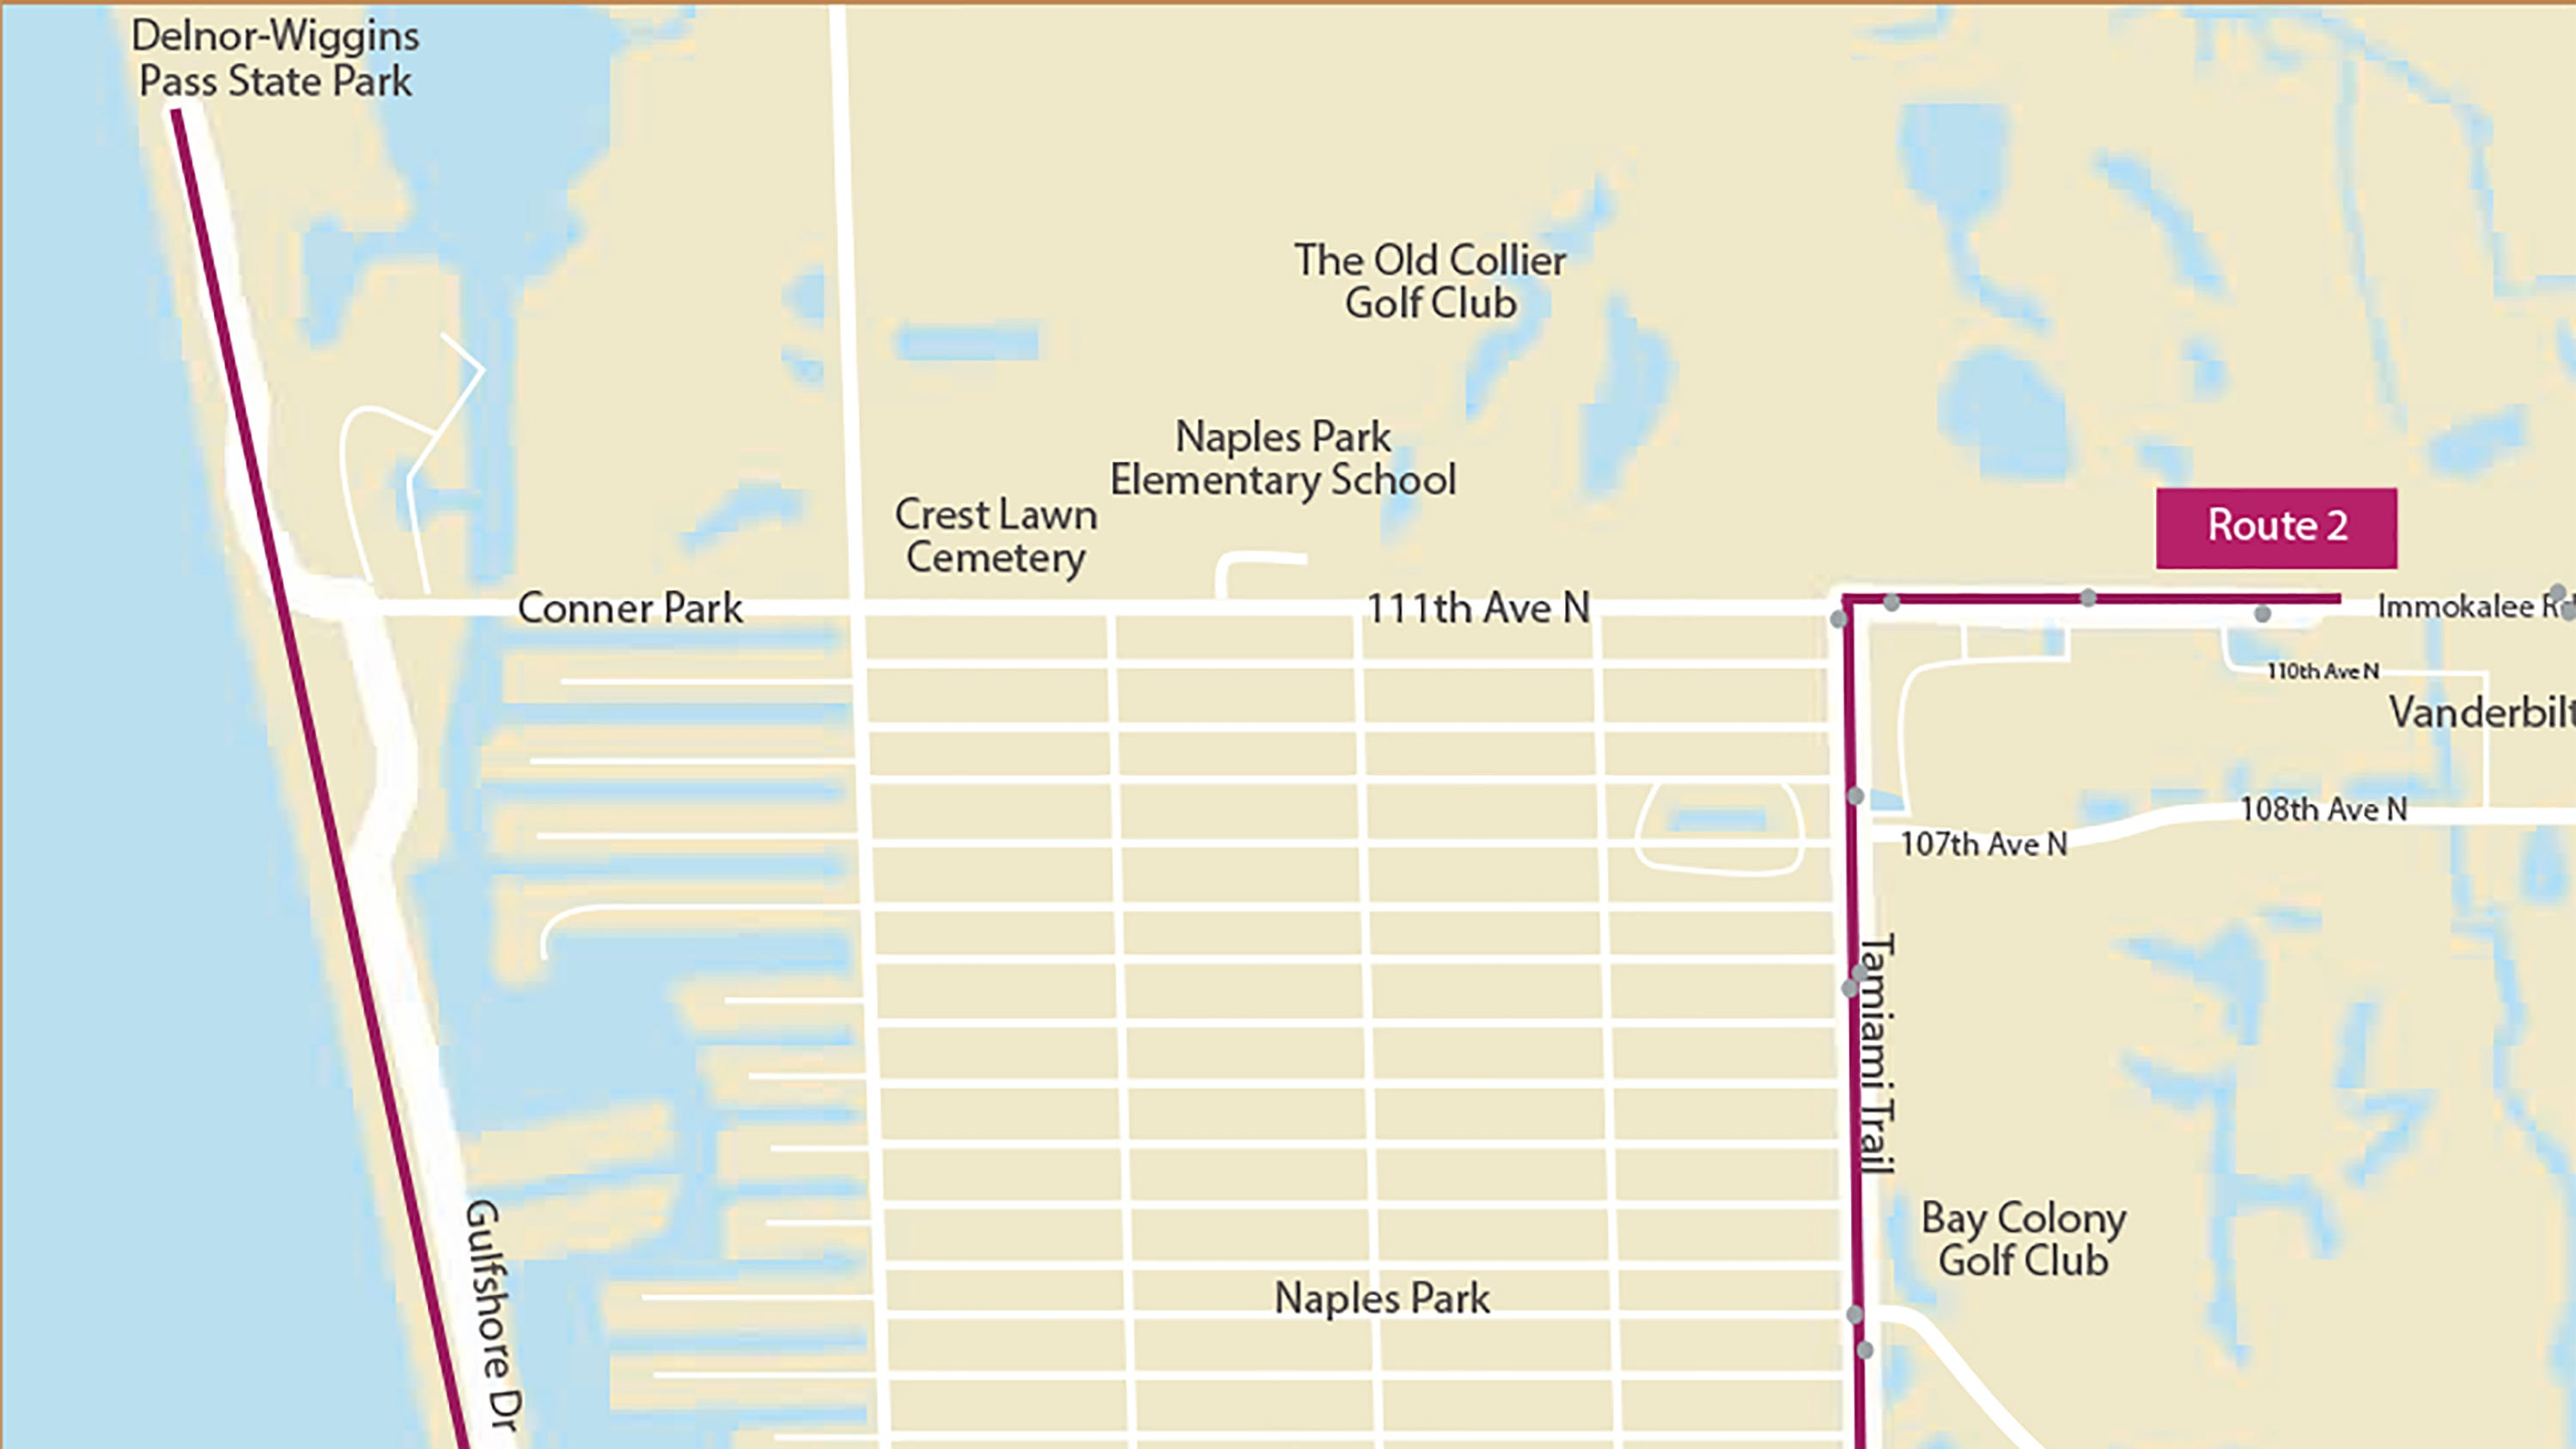 Collier County is once again offering a free shuttle service to North Collier beaches, from Nov. 23 until April 29.